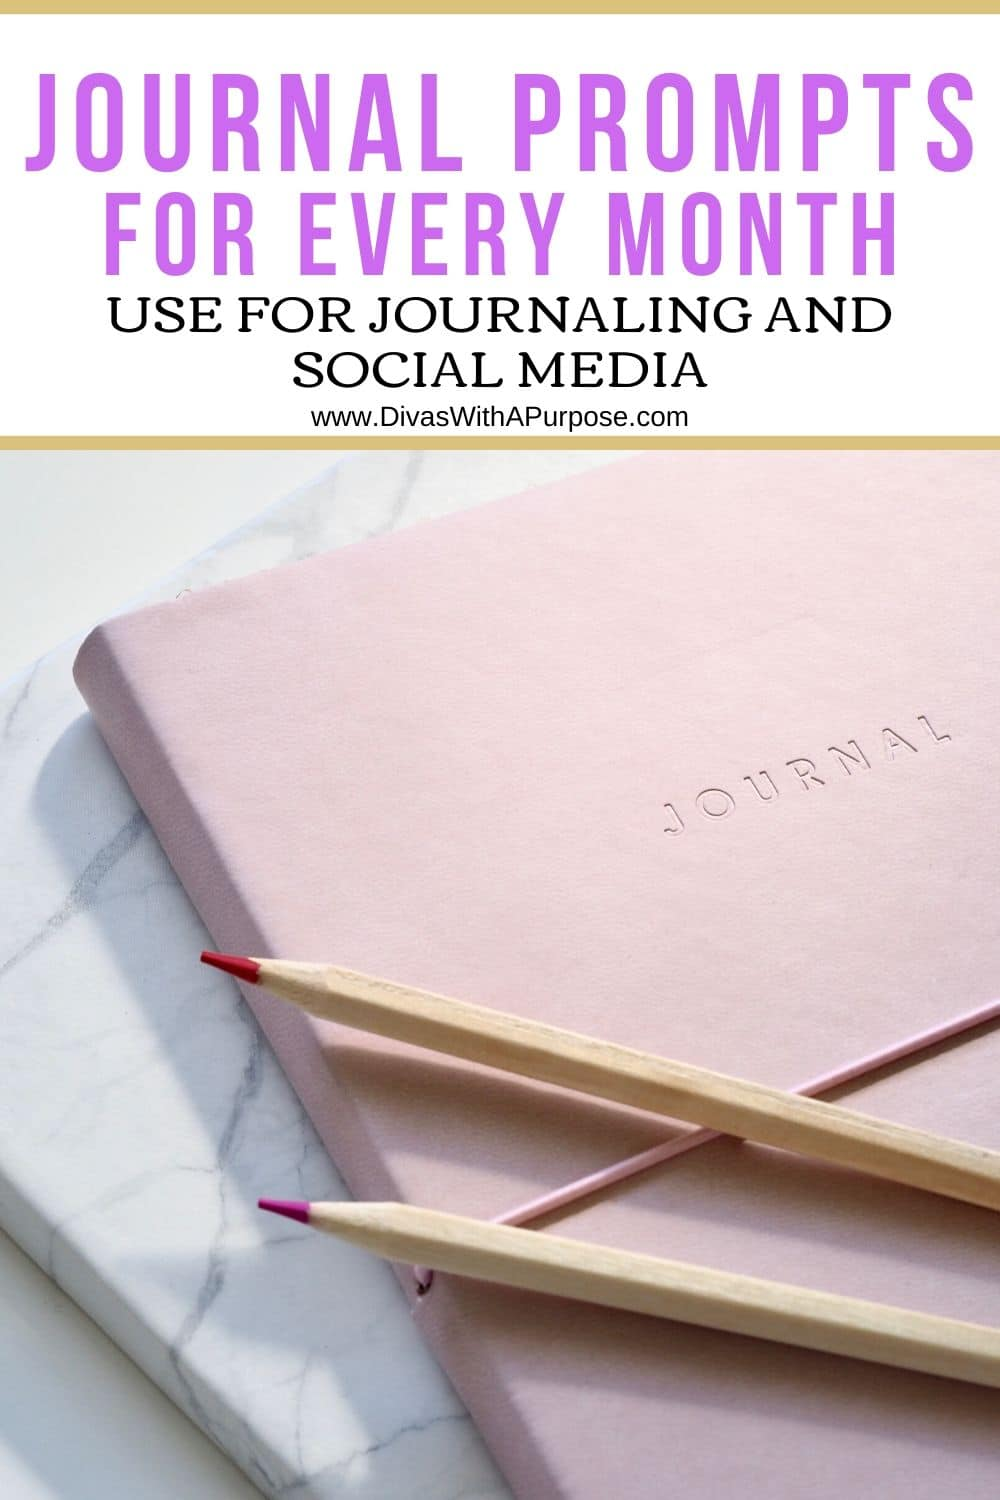 Free Journal Prompts for Every Month